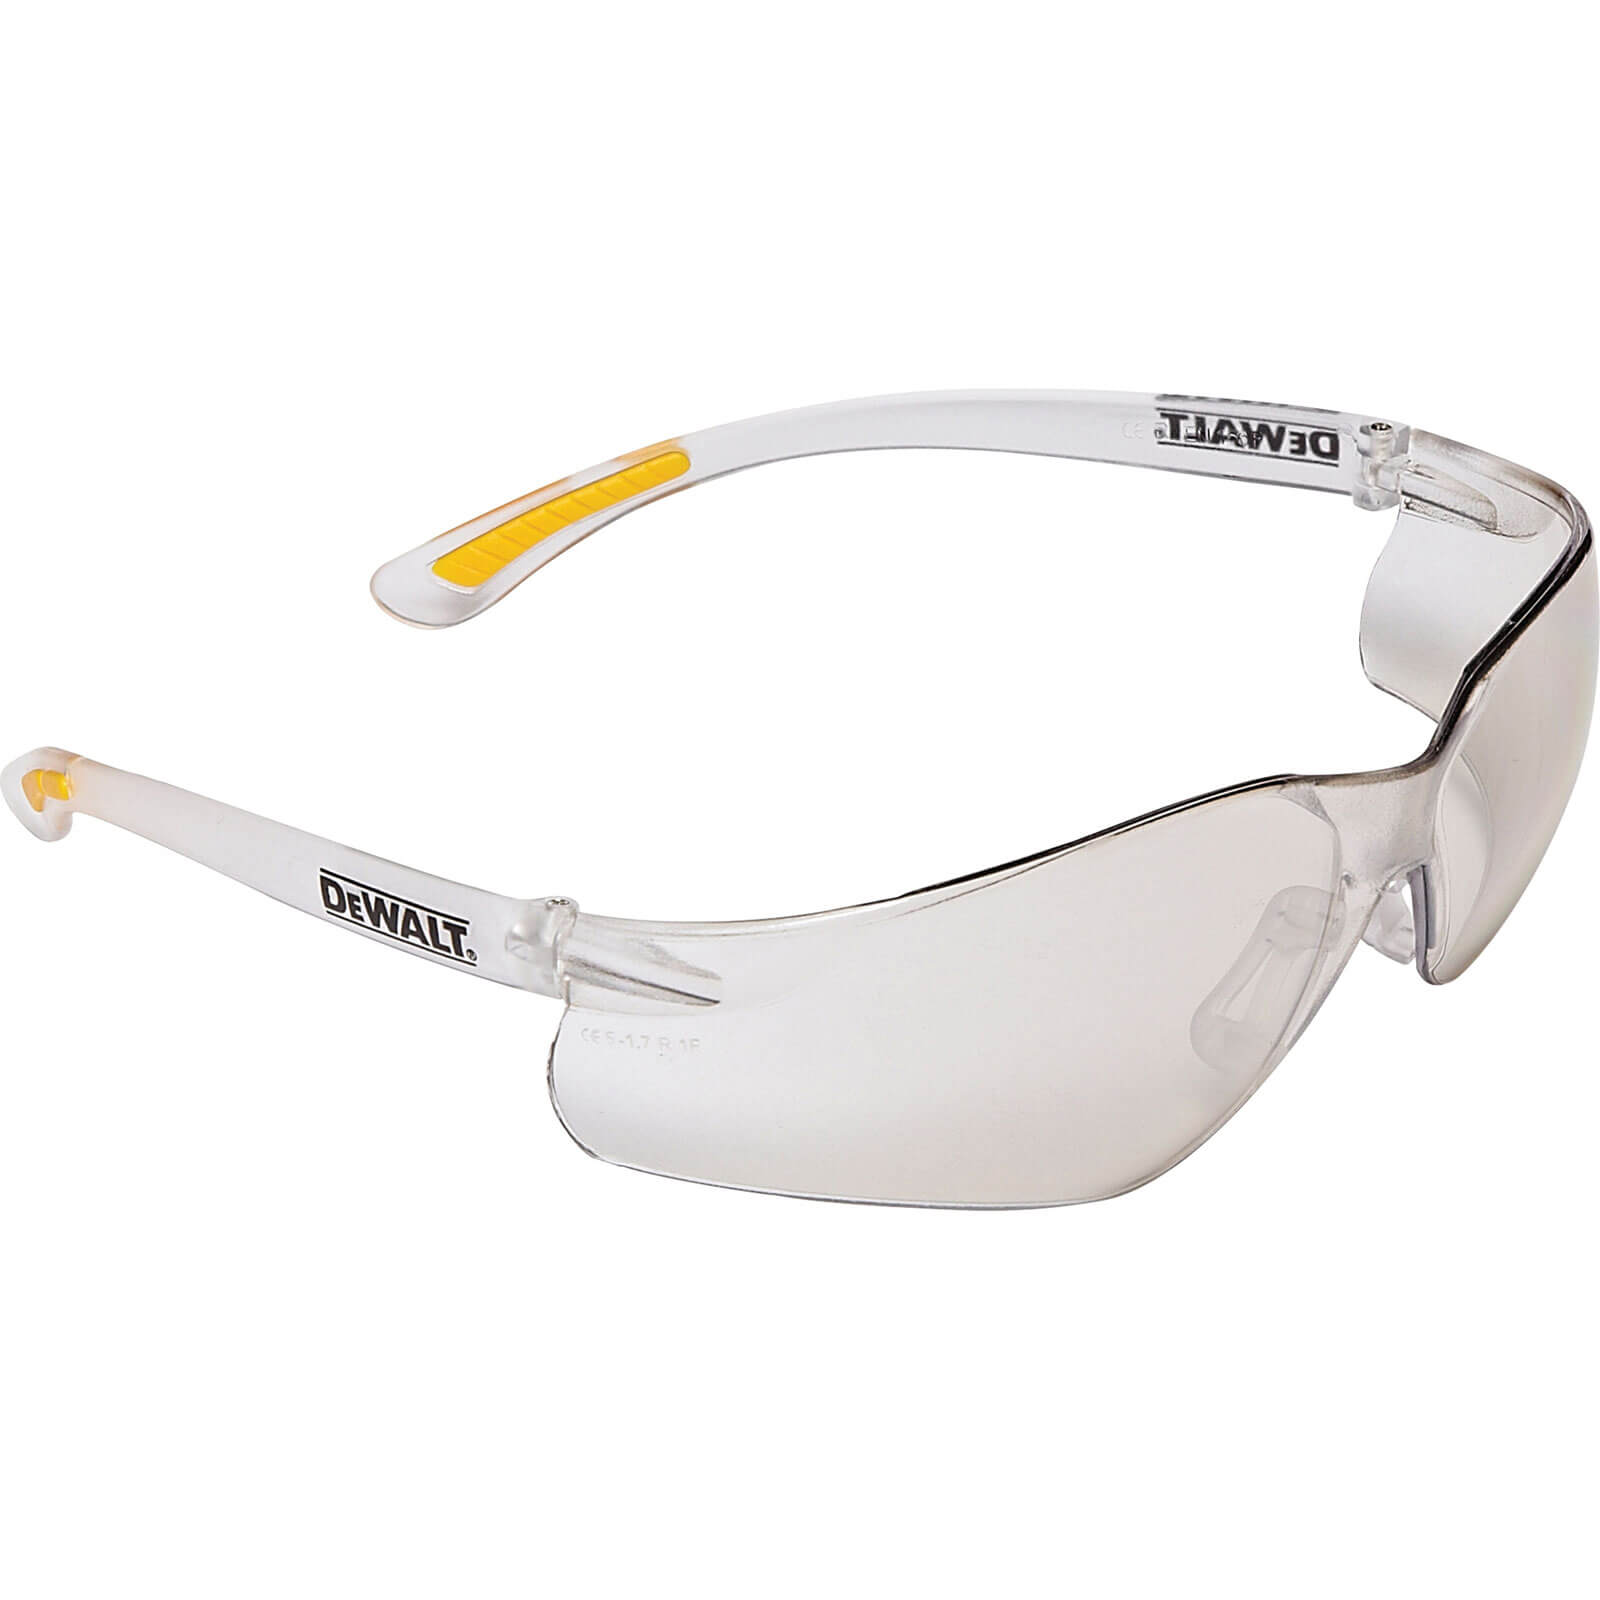 Image of DeWalt Contractor Pro Safety Glasses